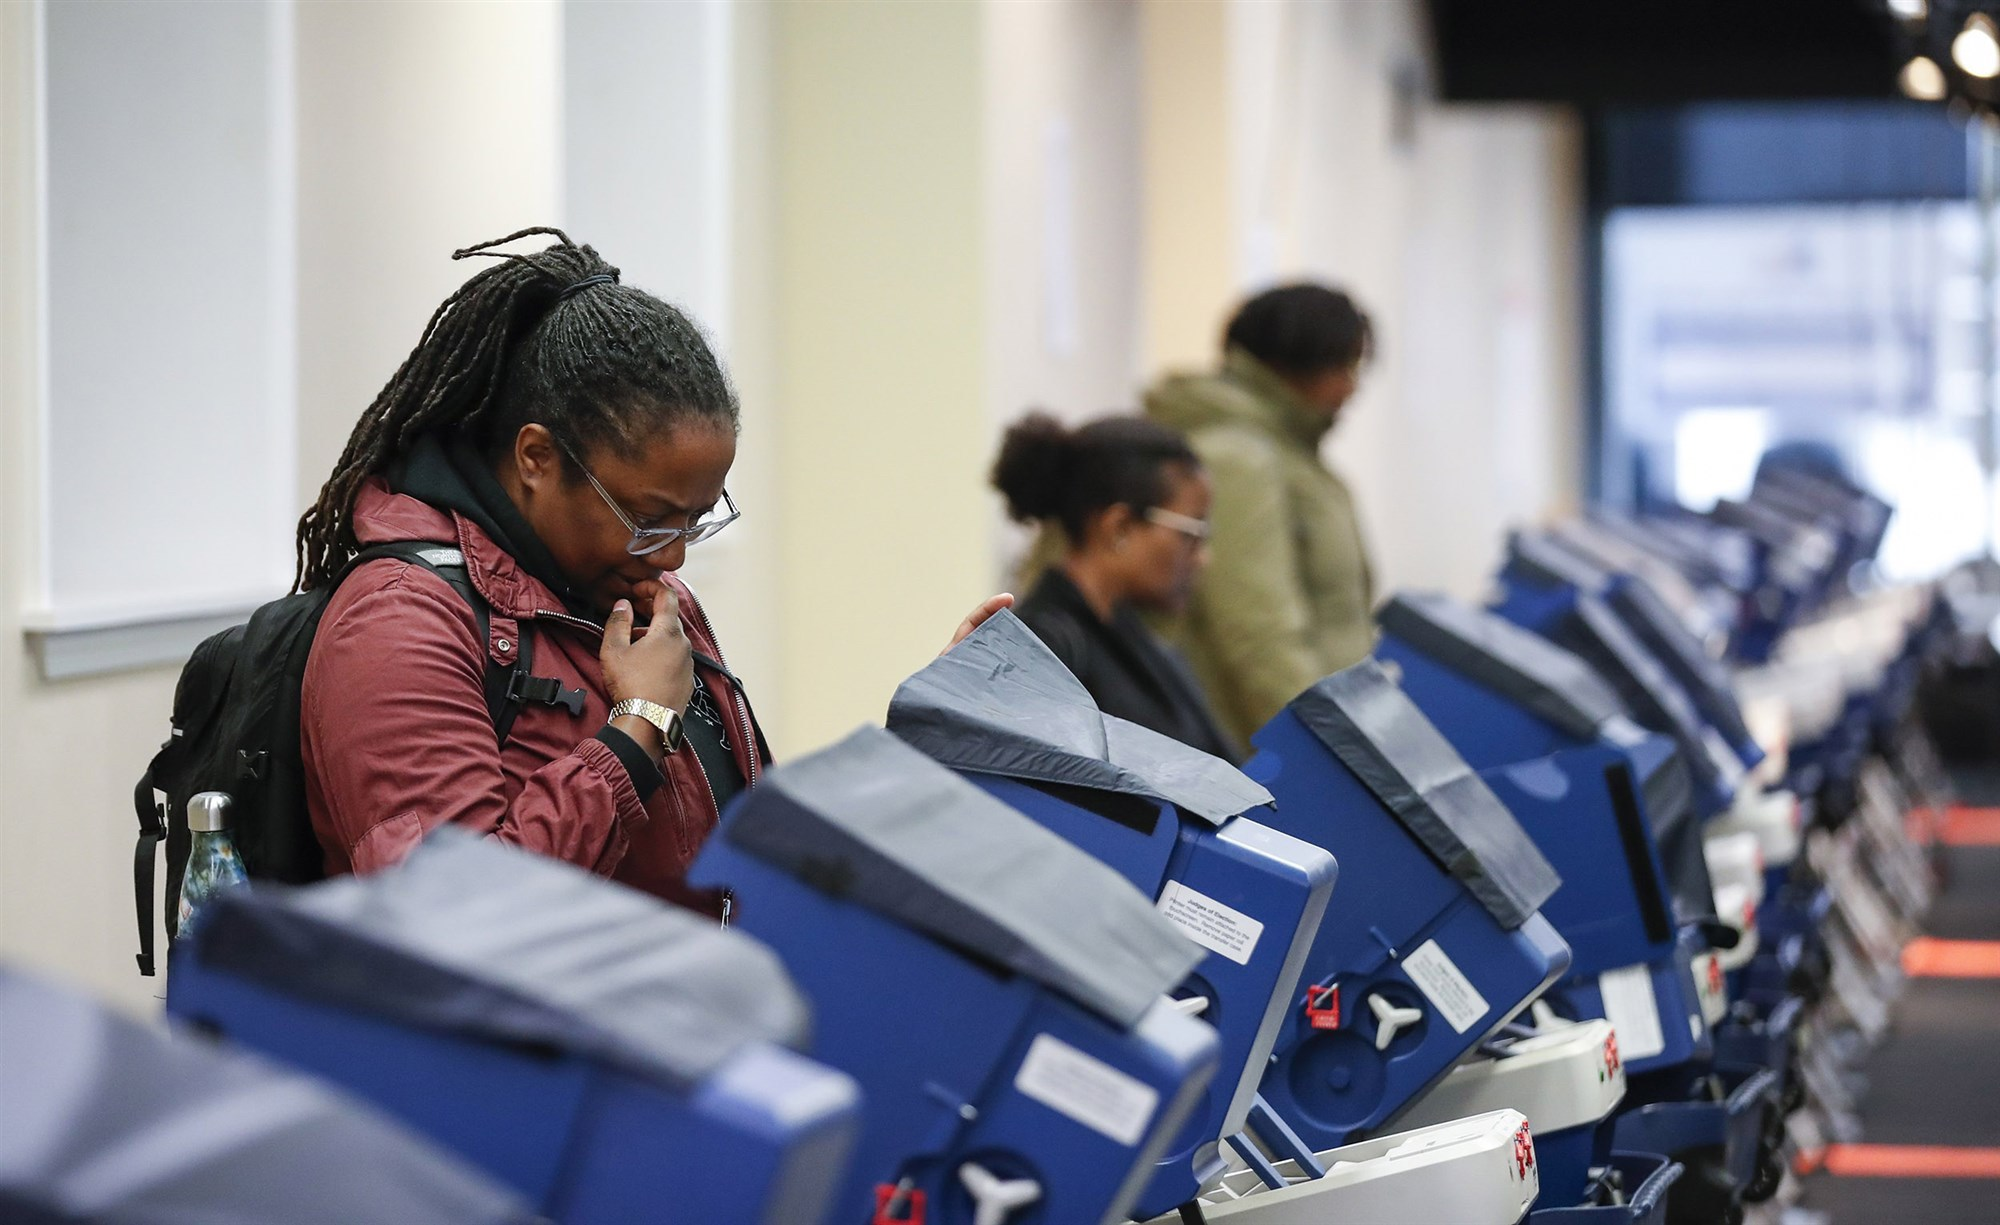 Voter Surpression, Black Vote, African American Vote, KOLUMN Magazine, KOLUMN, KINDR'D Magazine, KINDR'D, Willoughby Avenue, Wriit,